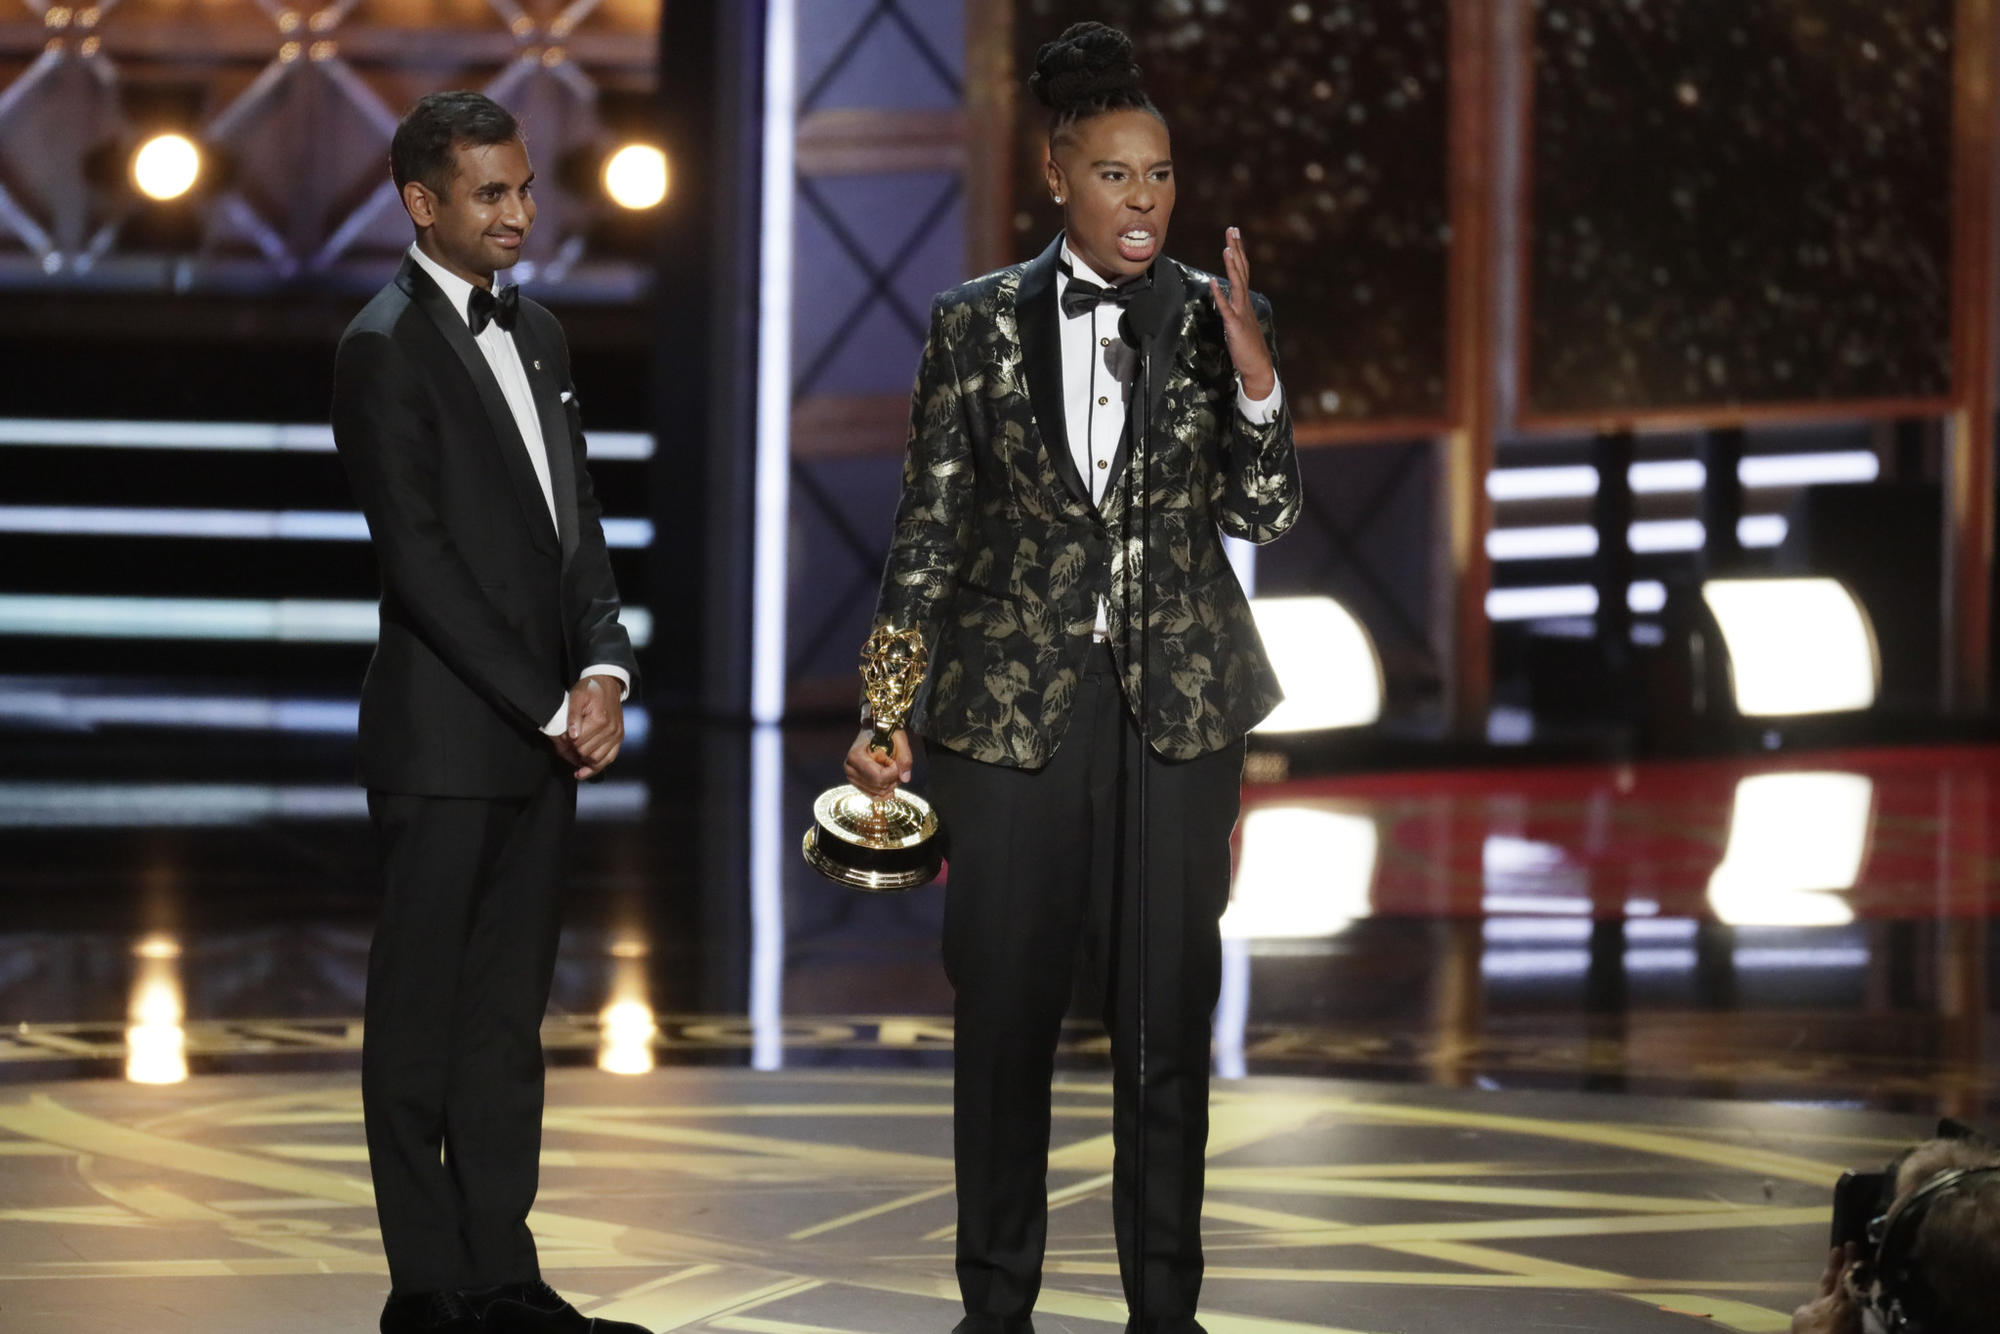 Lena Waithe giving her acceptance speech with Aziz Ansari at the 2017 Emmy Awards. (Robert Gauthier / Los Angeles Times)